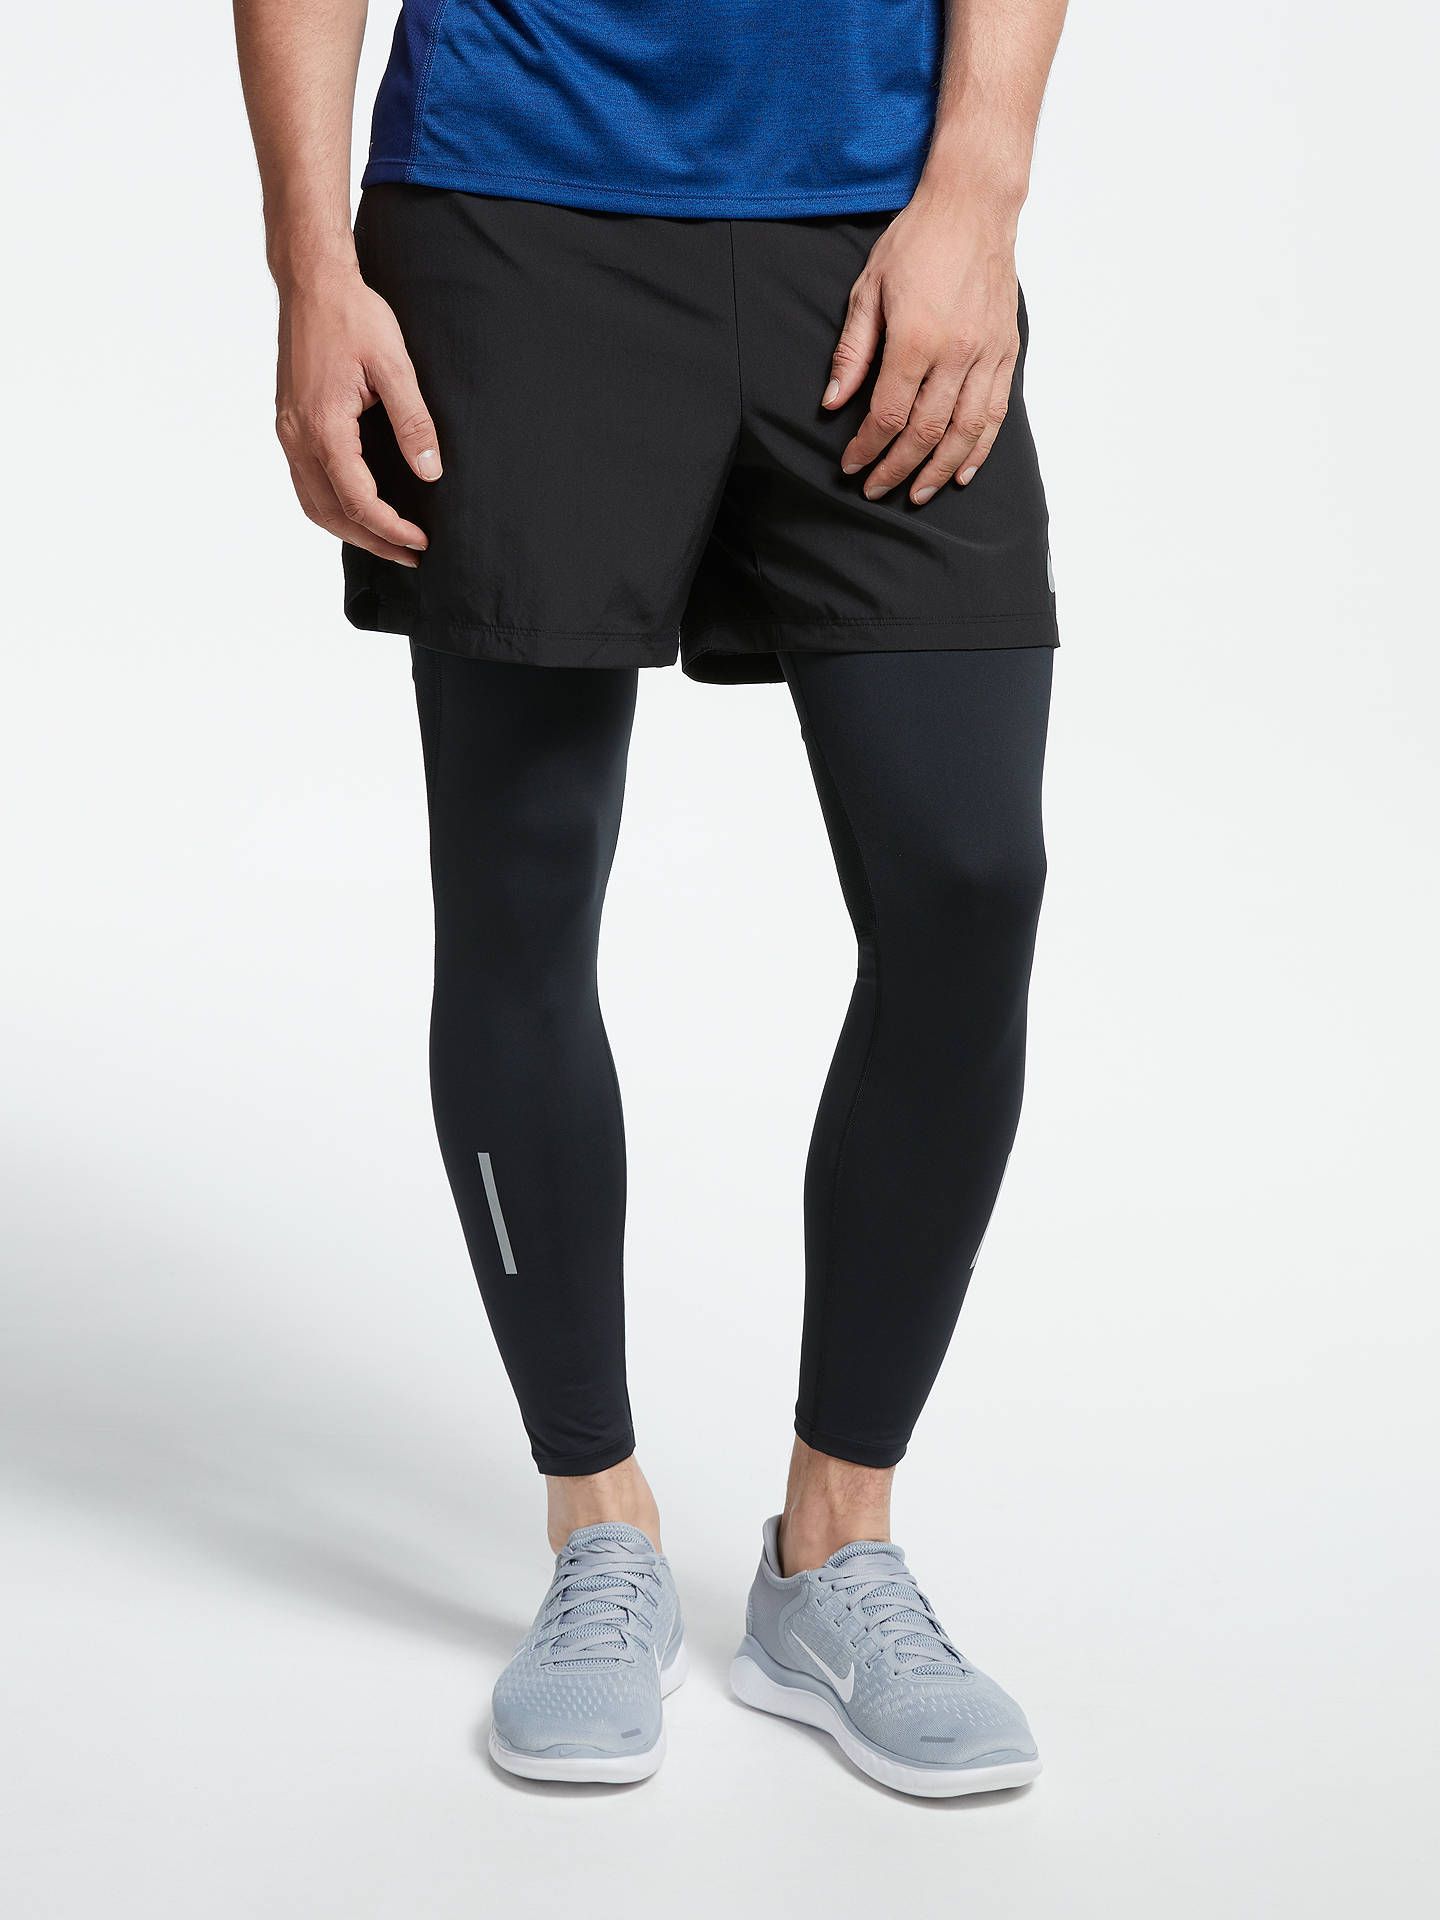 4a9e25a011390 Buy Nike Power Tech Running Tights, Black, S Online at johnlewis.com ...